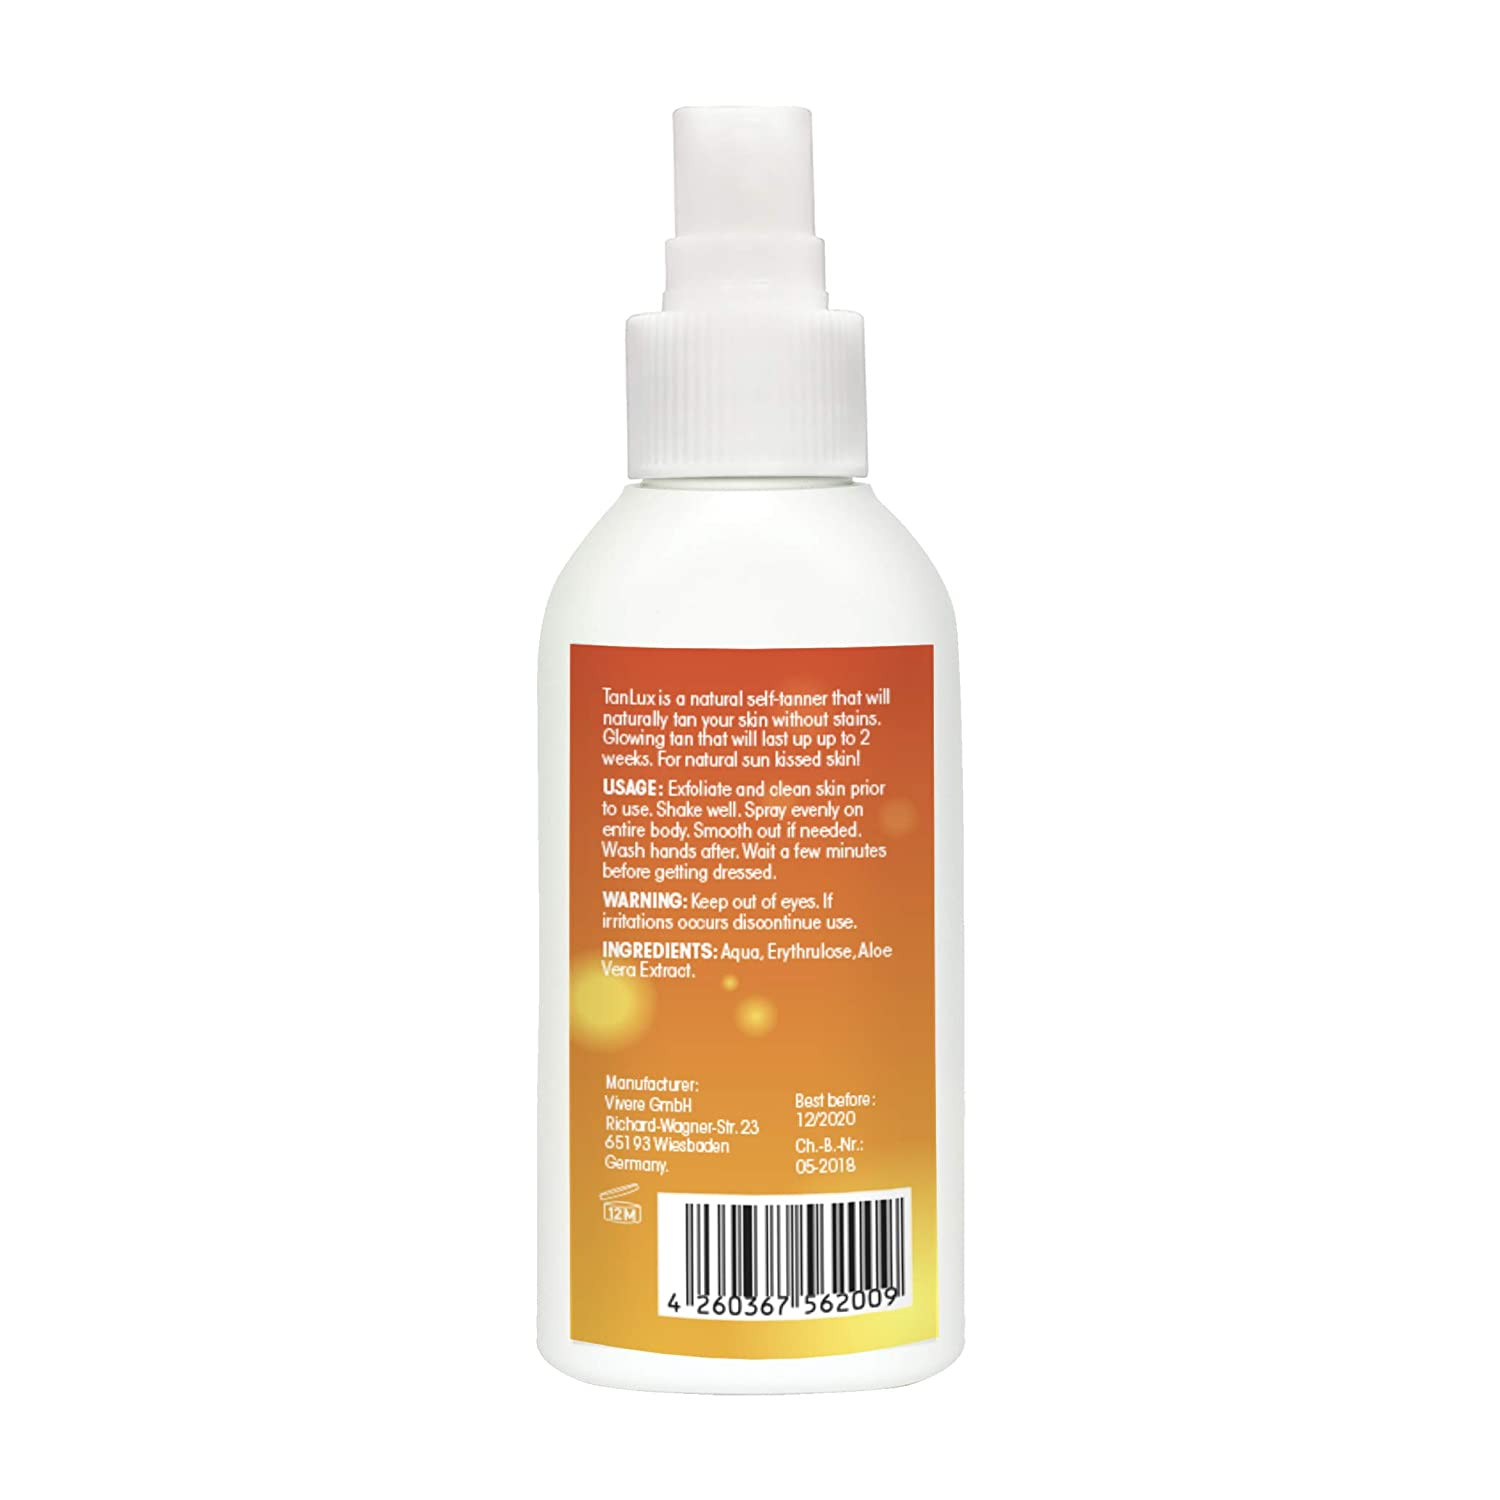 Best Self Tanner 2020.Amazon Com Natural Tanning Spray By Tanlux 100ml Organic